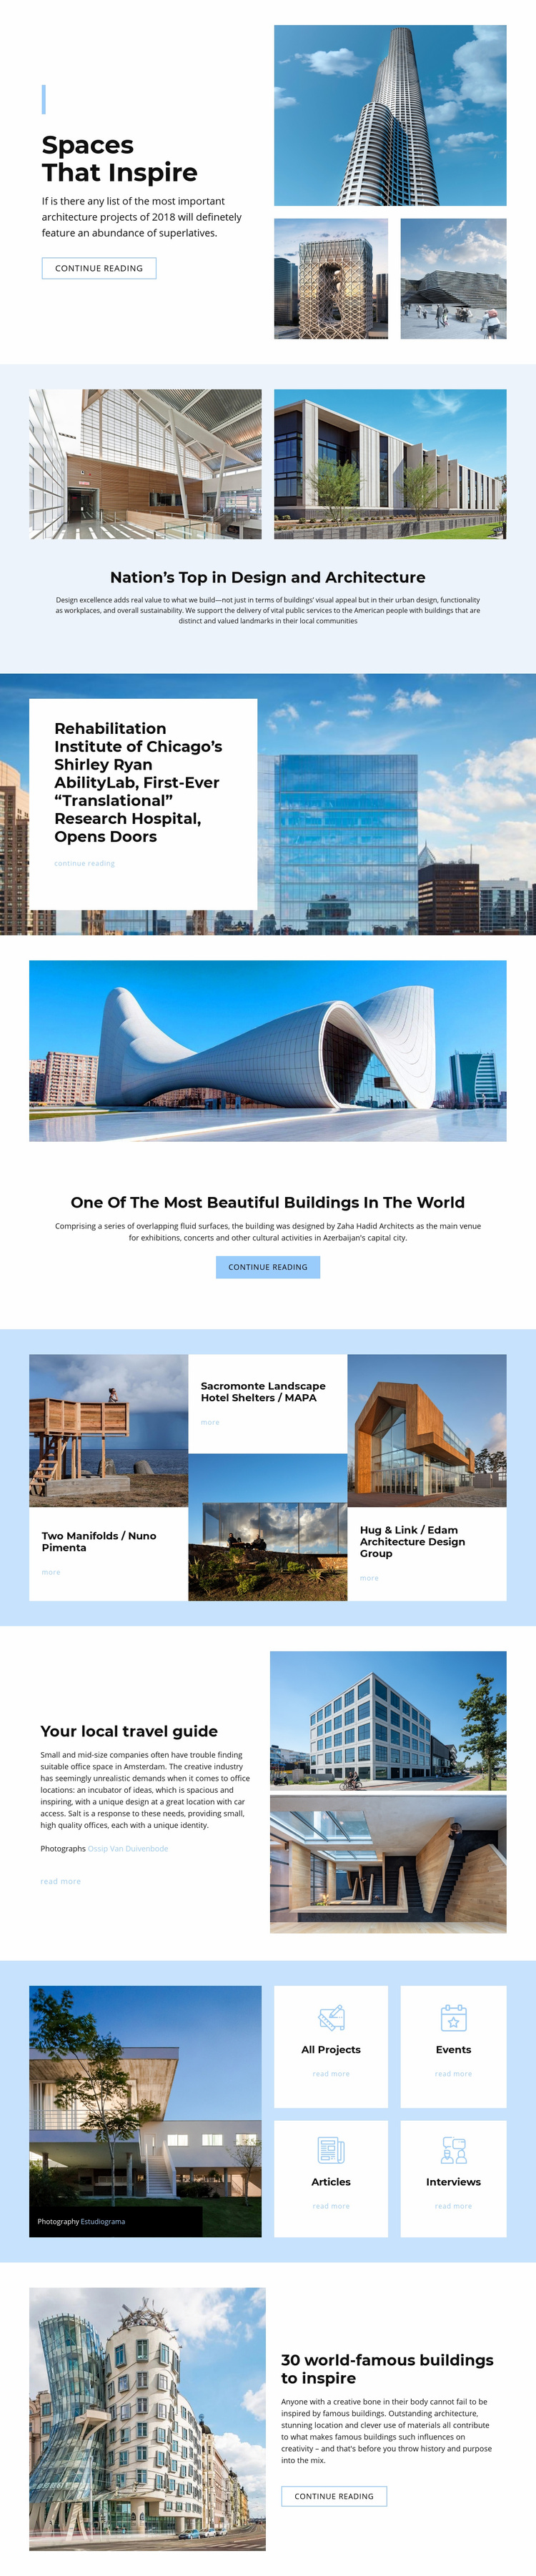 Space-inspired architechture Web Page Designer